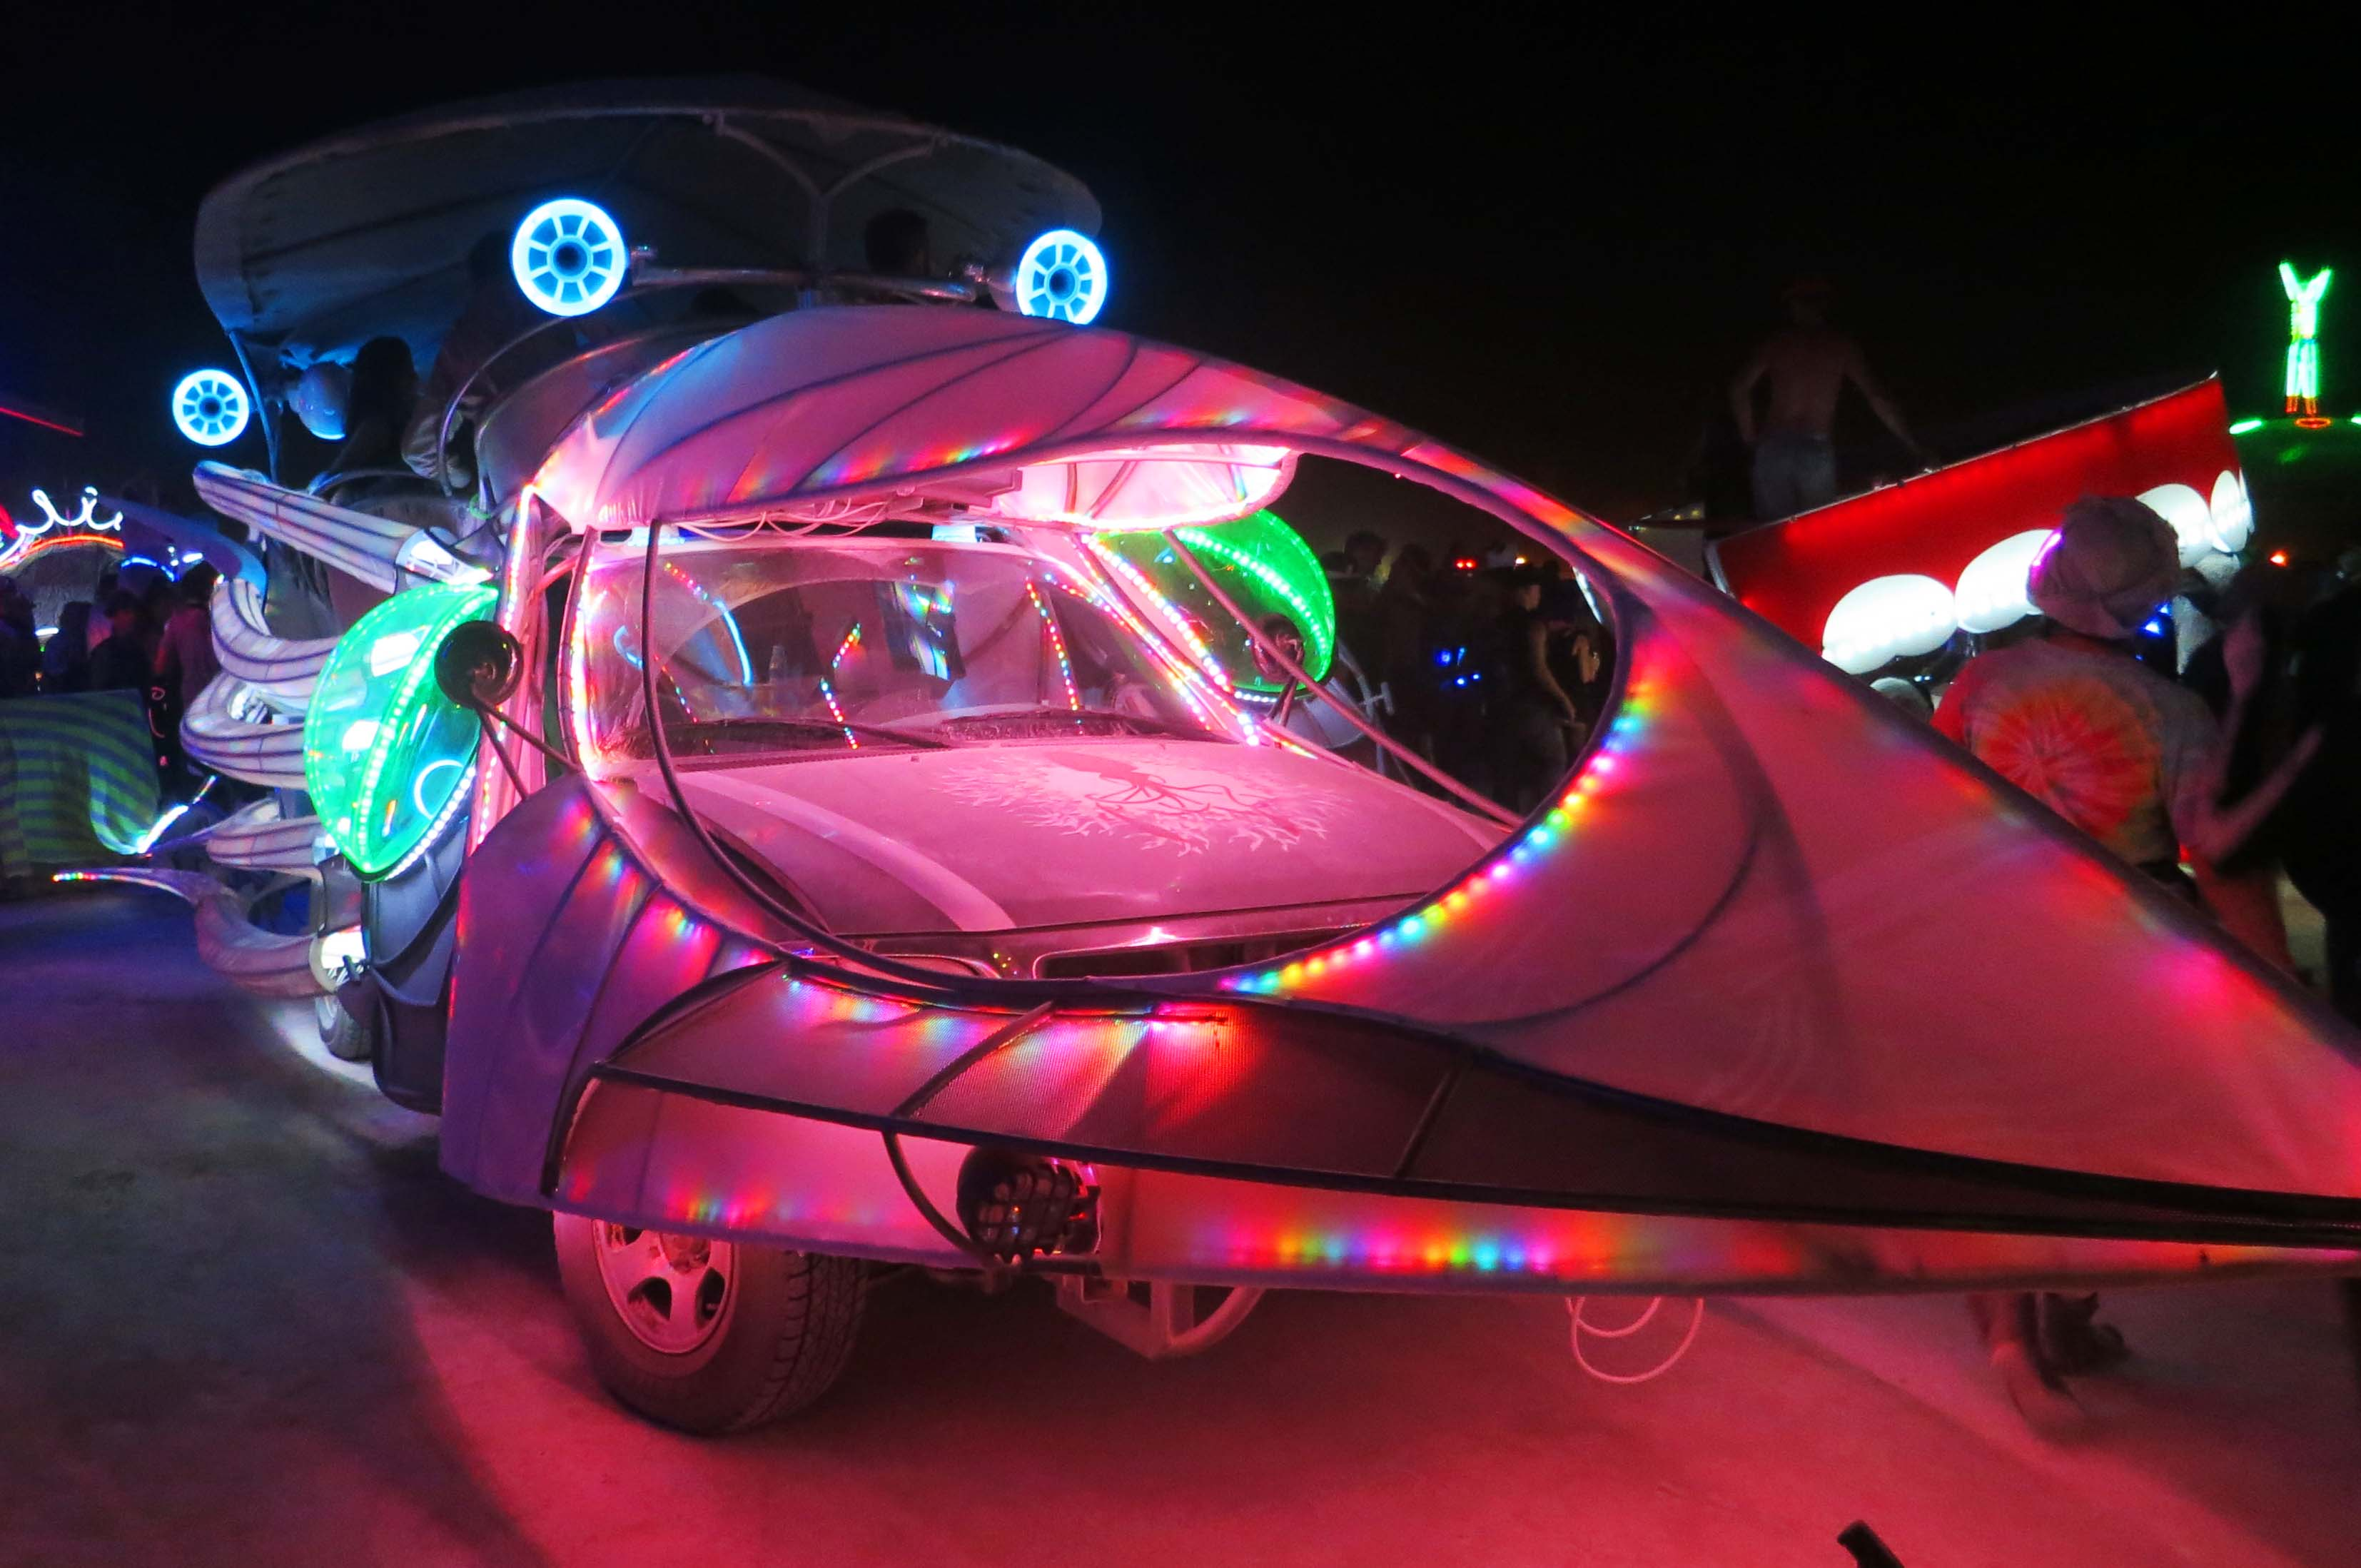 Mutant vehicles come in all shapes and sizes, ranging from what I call the squid car...